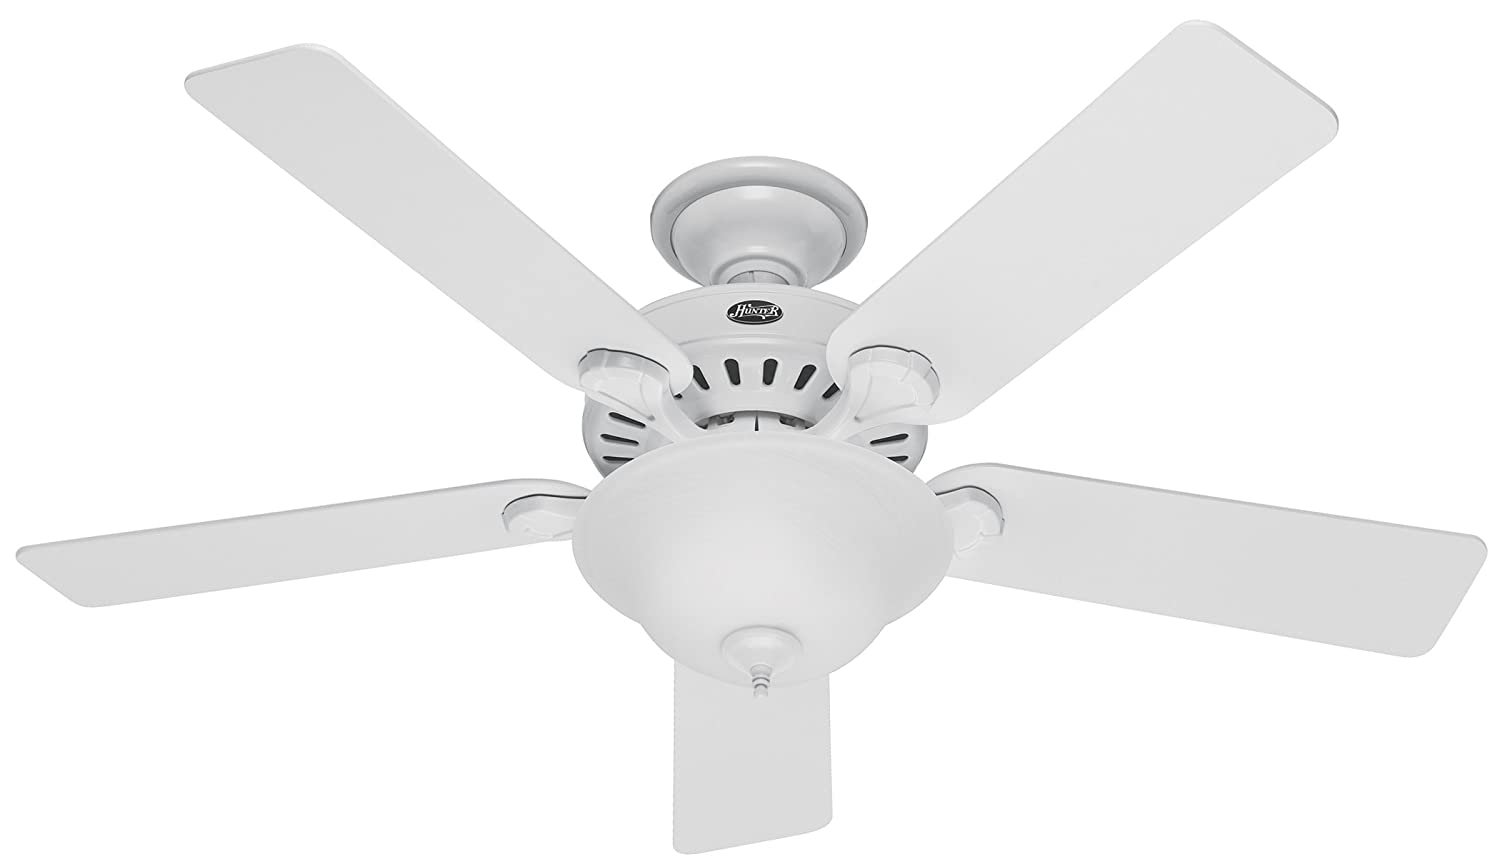 Hunter 53251 pros best five minute fan 52 inch white ceiling fan hunter 53251 pros best five minute fan 52 inch white ceiling fan with five whitebeech blades and swirled marble glass bowl light kit amazon aloadofball Image collections